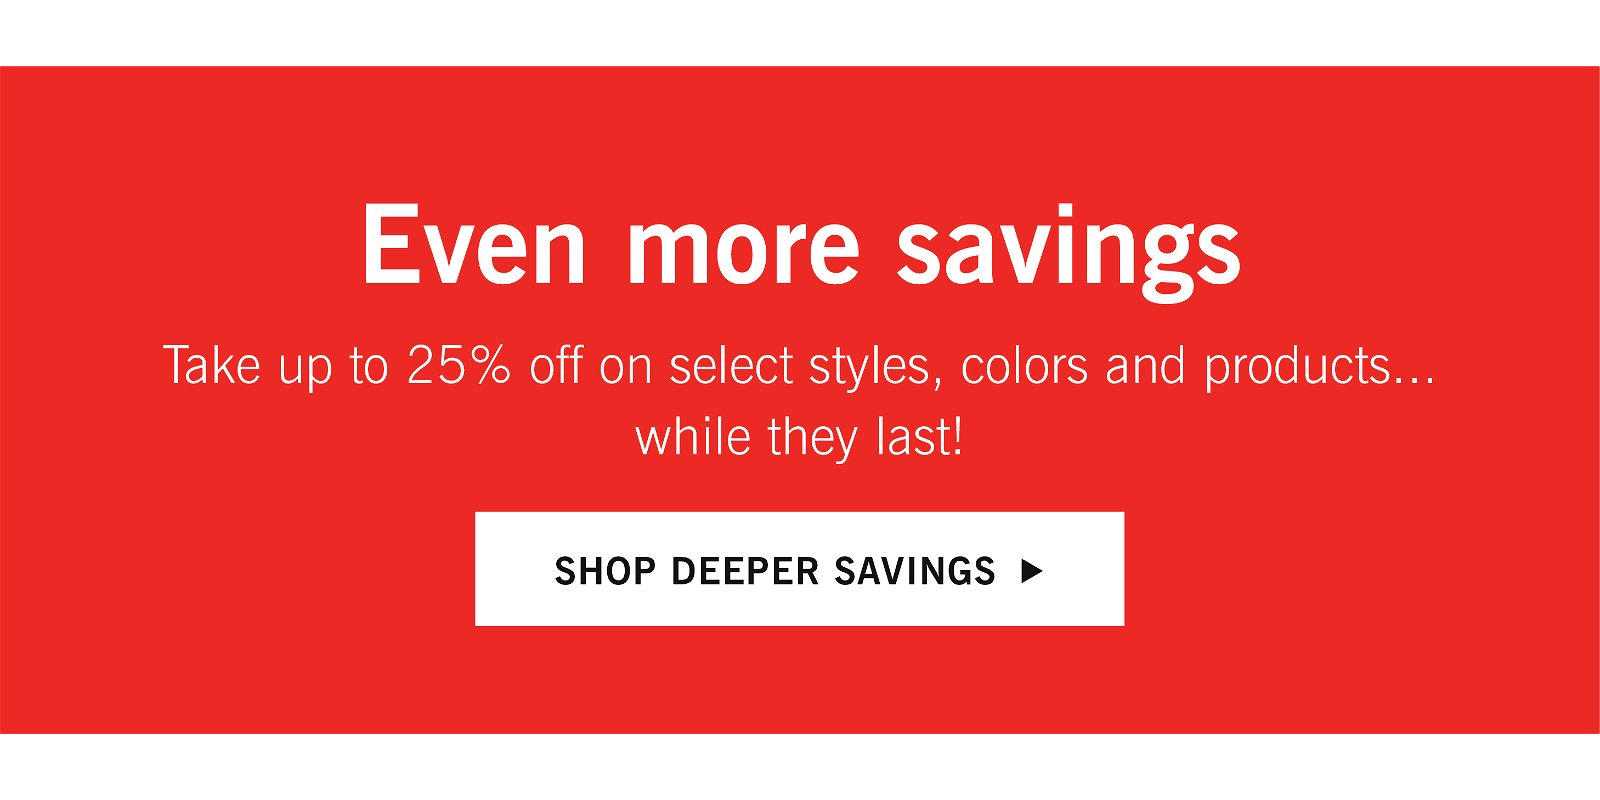 Shop Deeper Savings